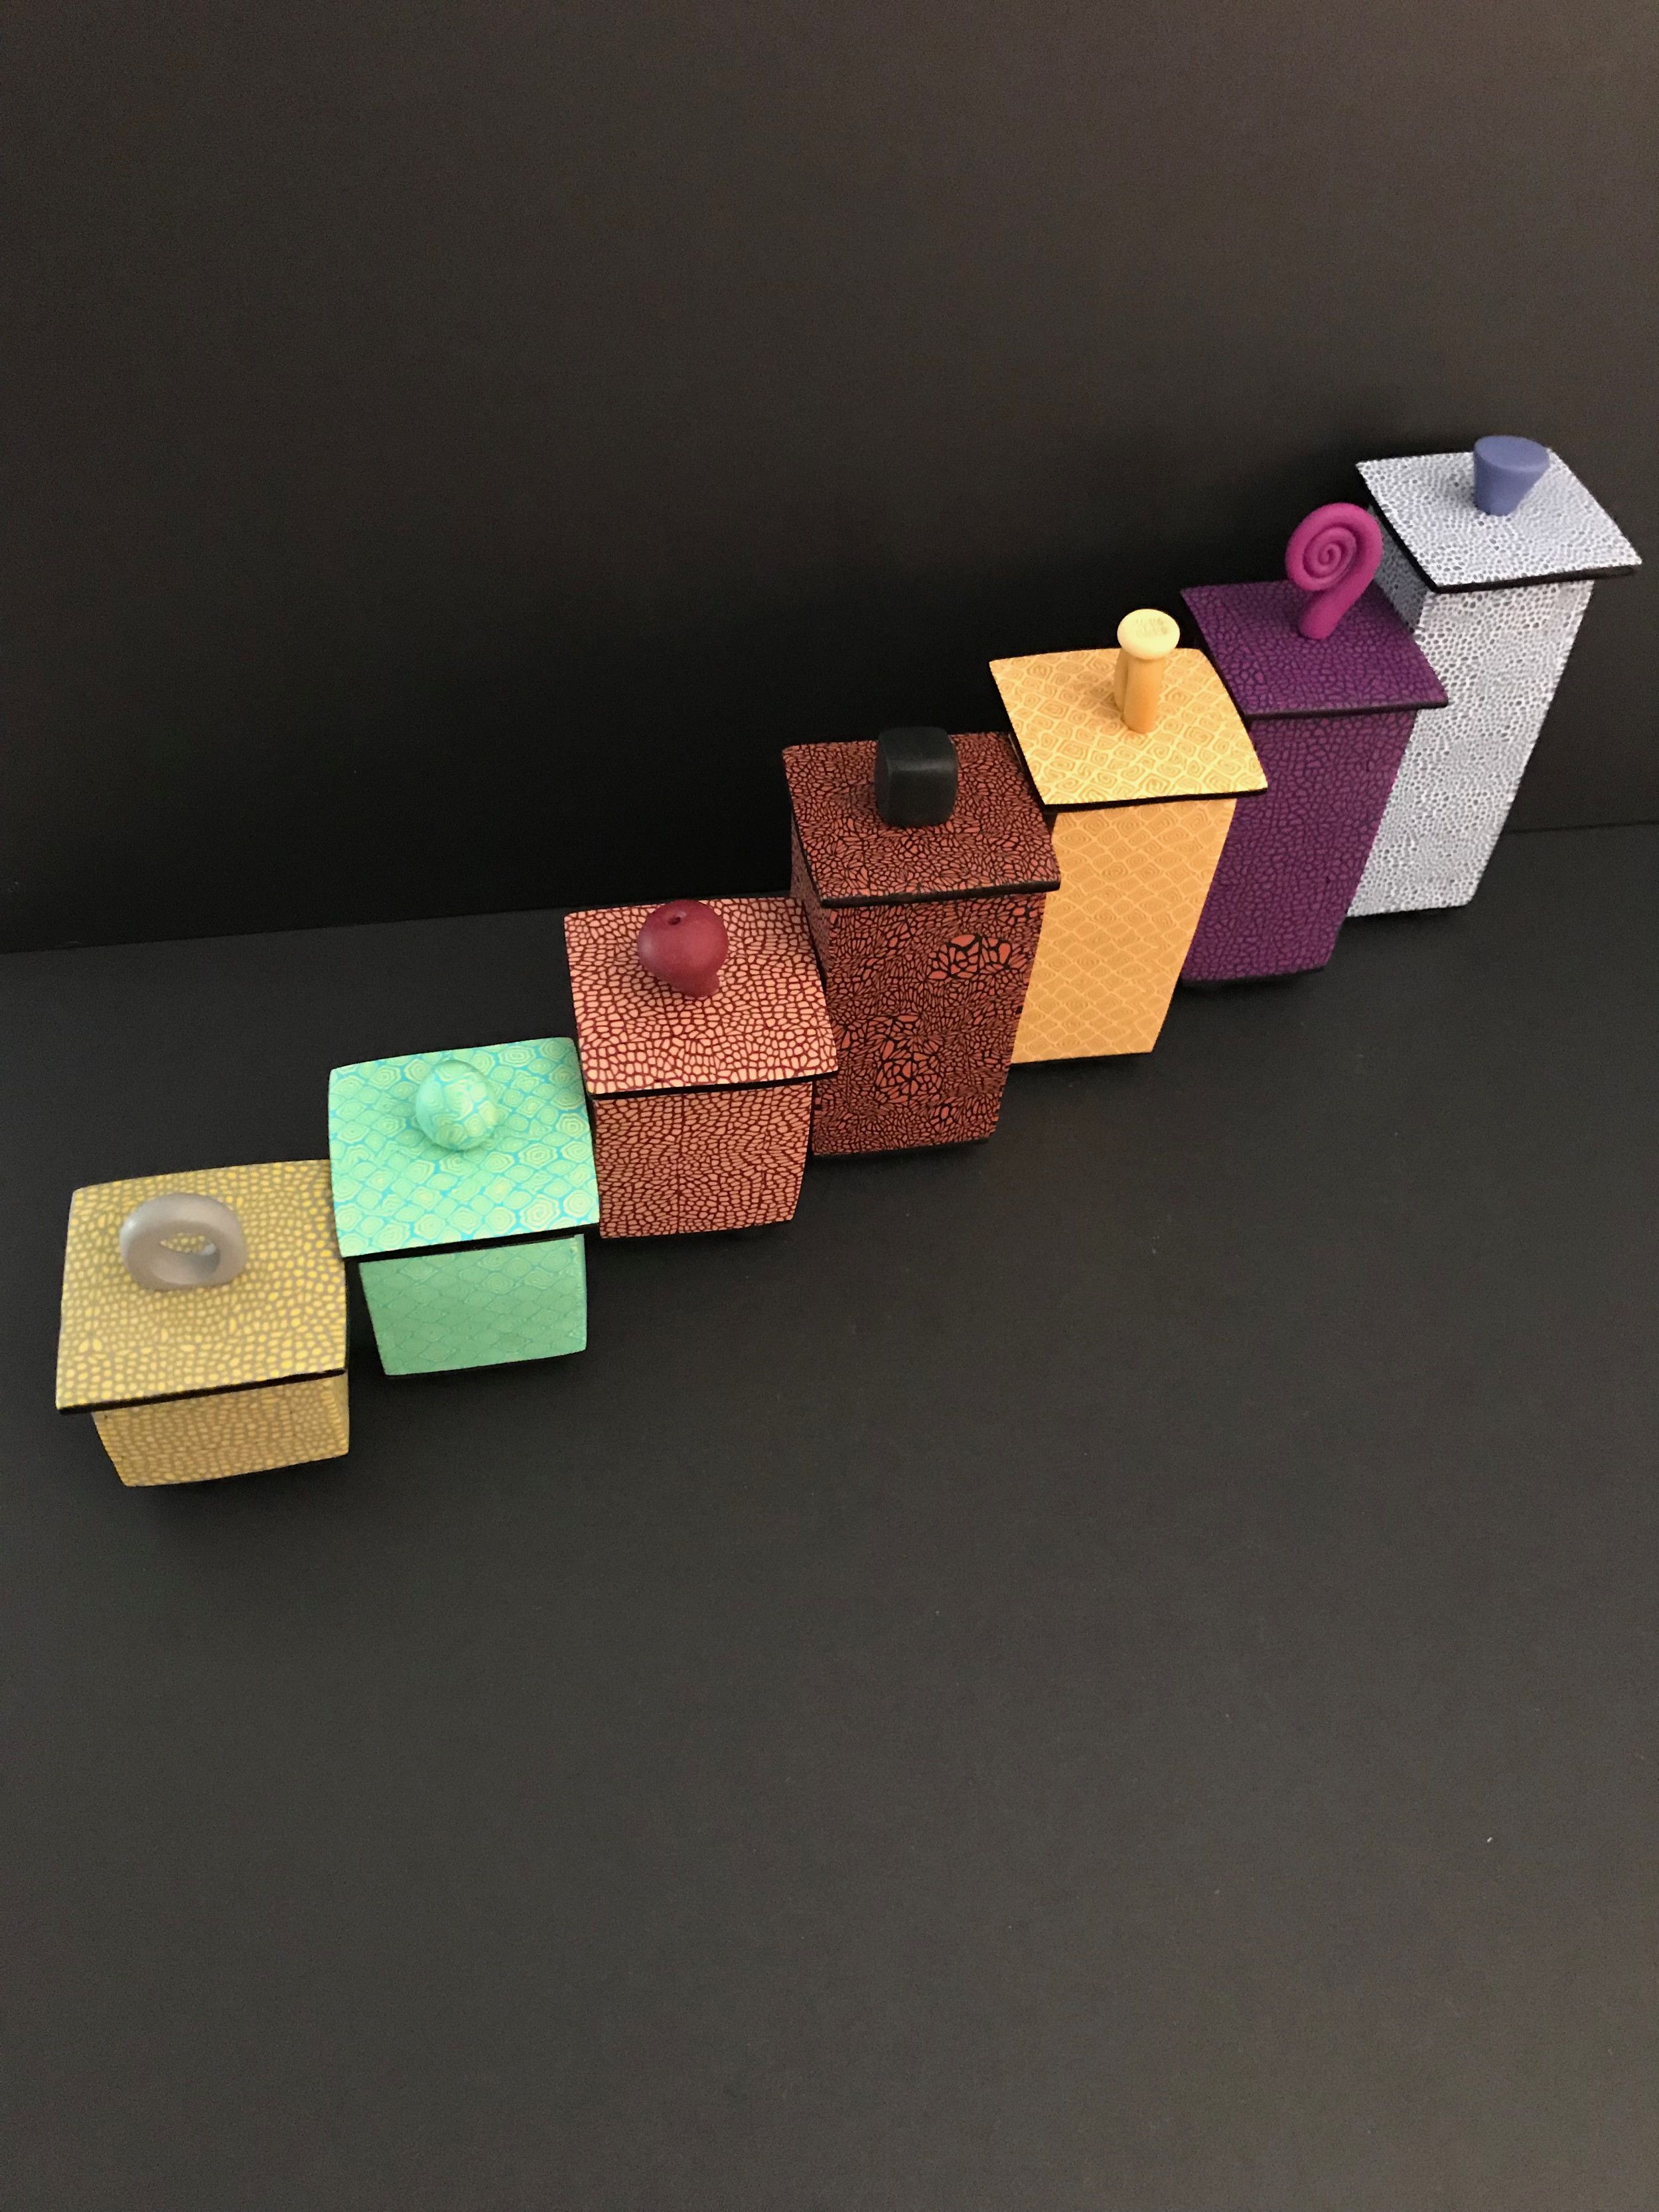 Temple Boxes - These boxes were inspired by the shape of Japanese Temples seen on a resent visit. I like to think that they may be used to contain revered items.